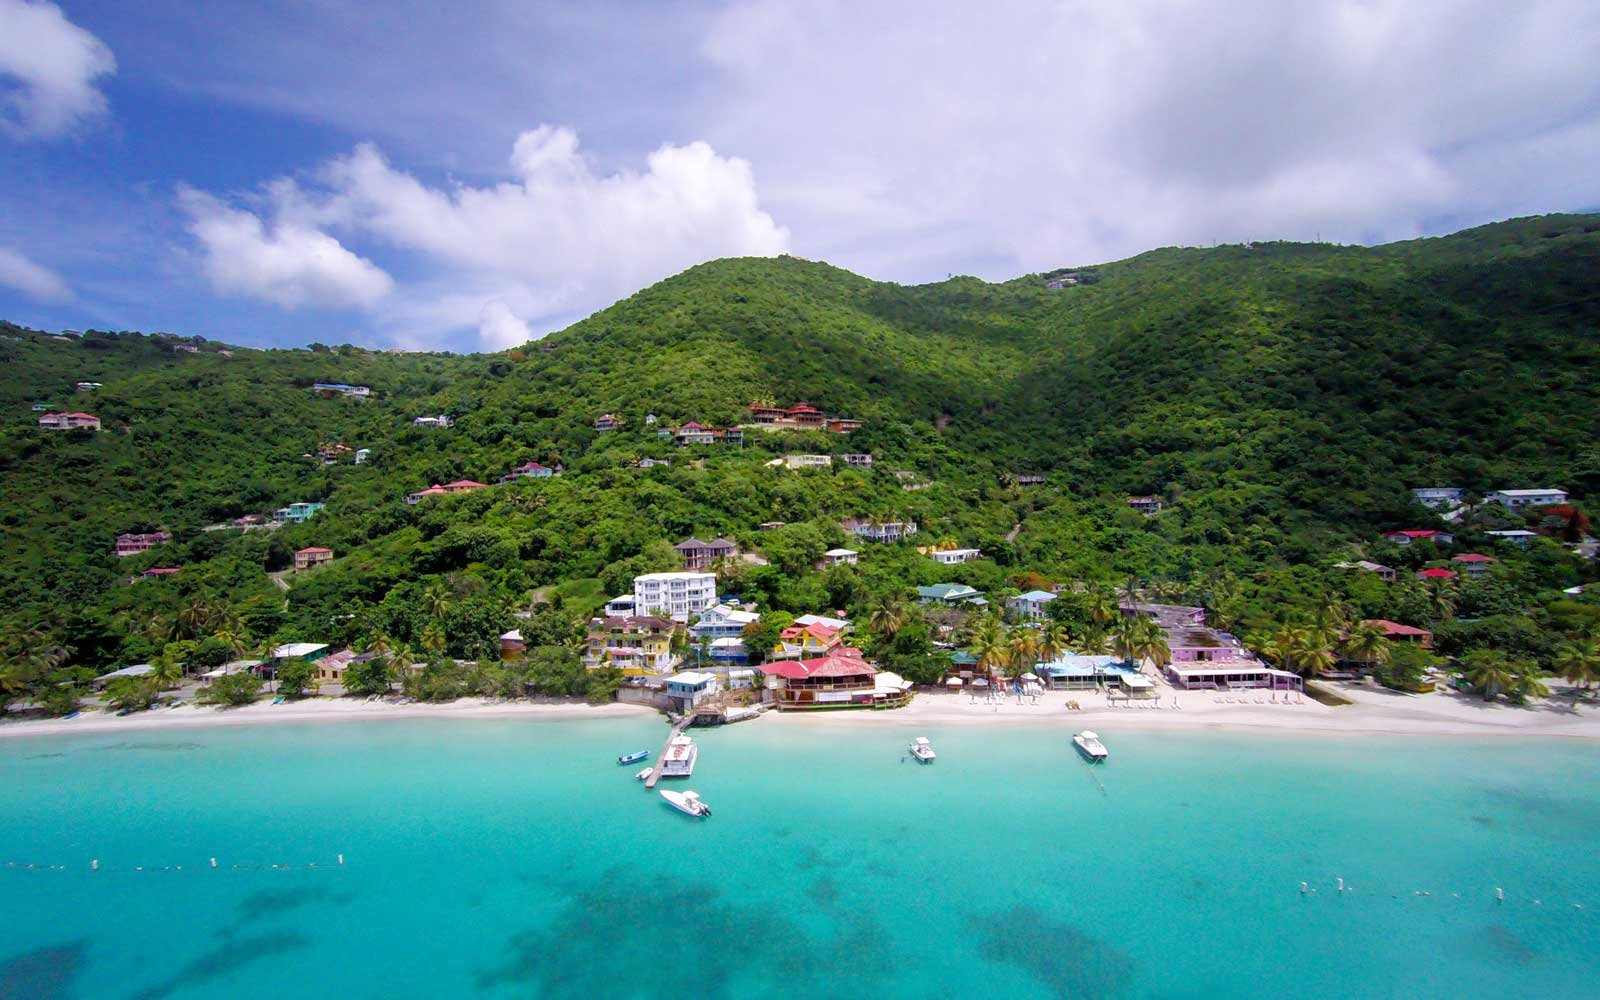 Aerial view of Cane Garden Bay, Tortola, BVI